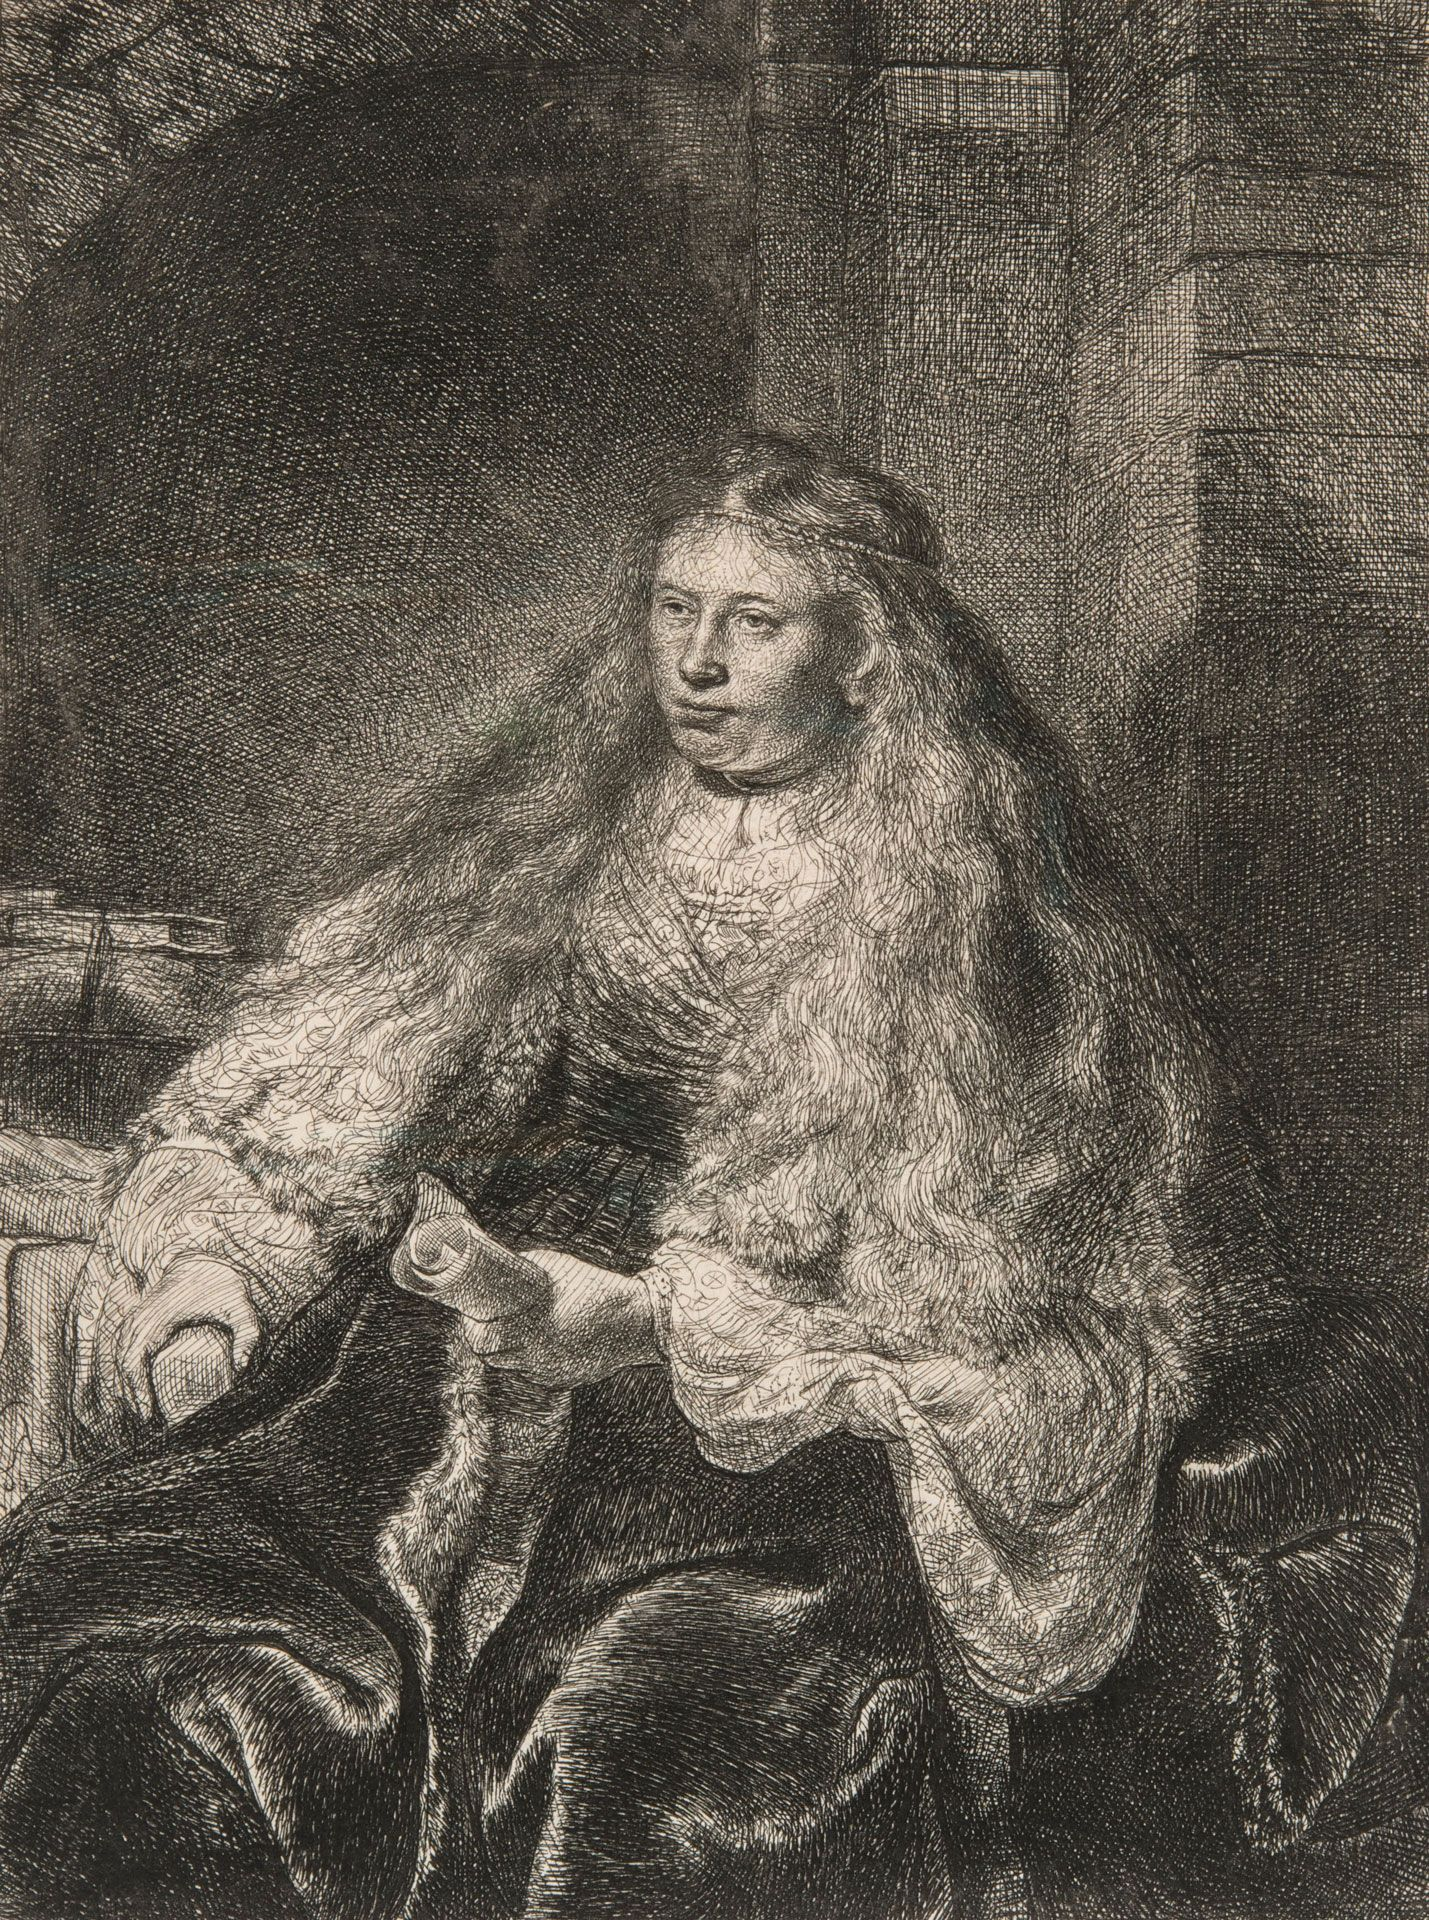 Rembrandt Harmensz. van Rijn (1606-1669), The Great Jewish Bride, 1635, etching, drypoint, engraving, state V/V, 22.5 x 17.1 cm. MMFA, gift of Freda and Irwin Browns in honour of Hilliard T. Goldfarb. Photo MMFA, Jean-François Brière